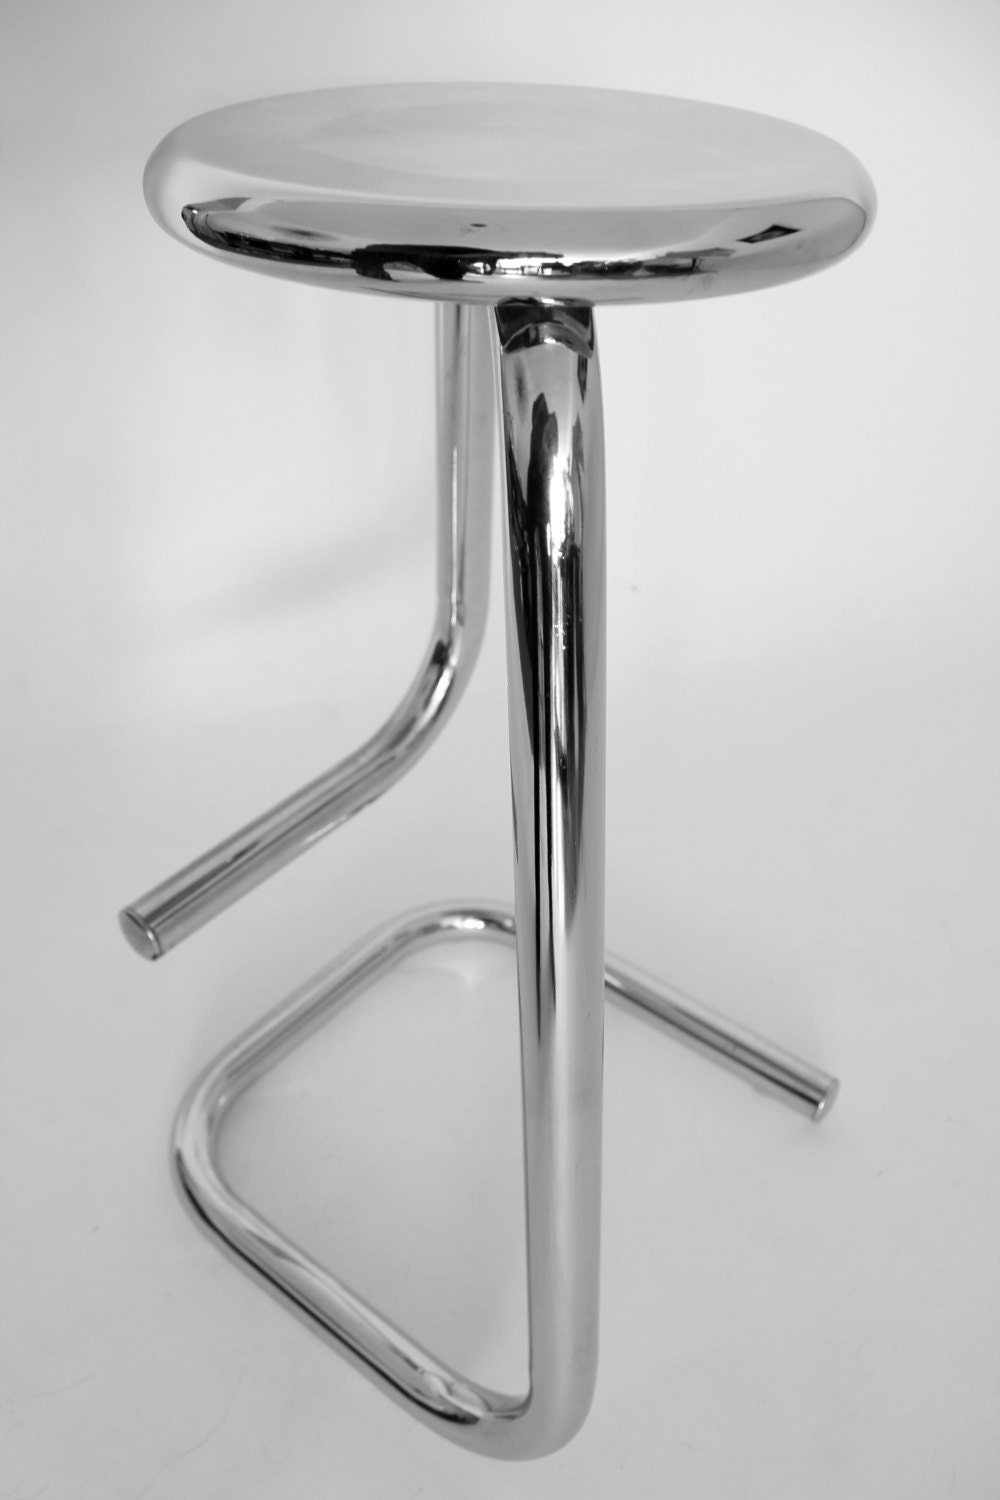 Tubular Chrome Bar Stool From Kinetics K700 Vintage Mid